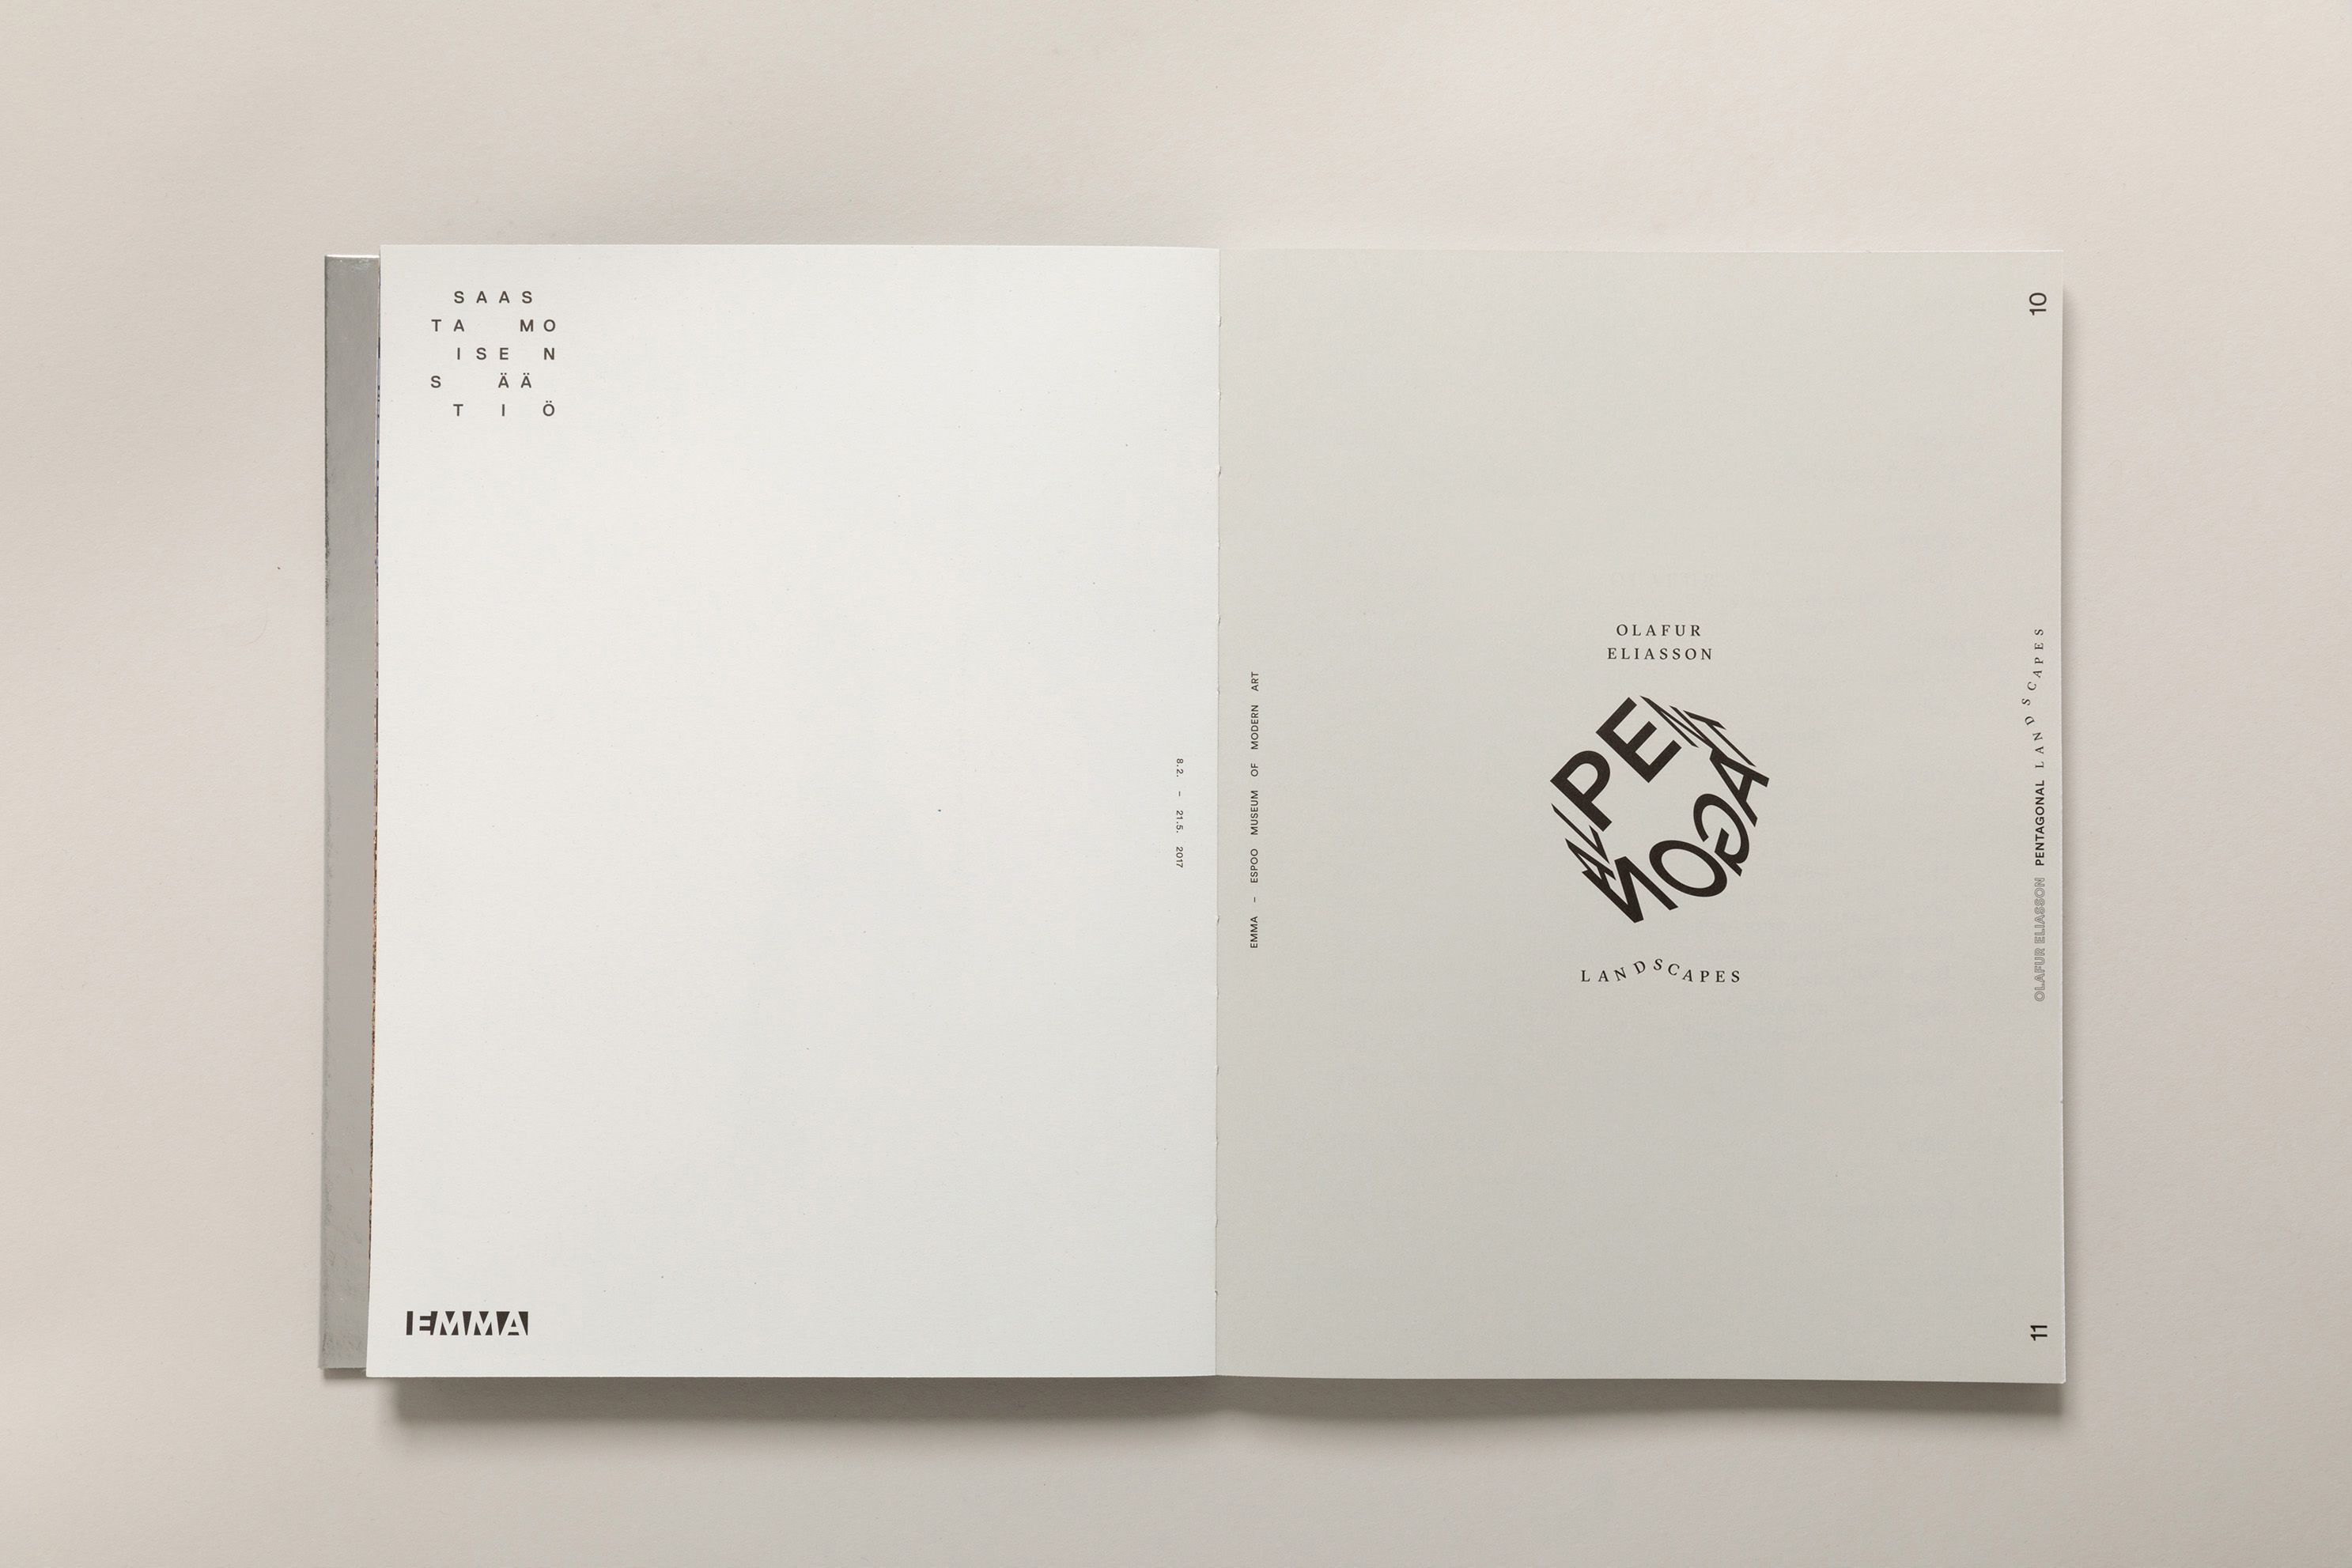 Olafur Eliasson: Pentagonal Landscapes exhibition catalogue. book ...